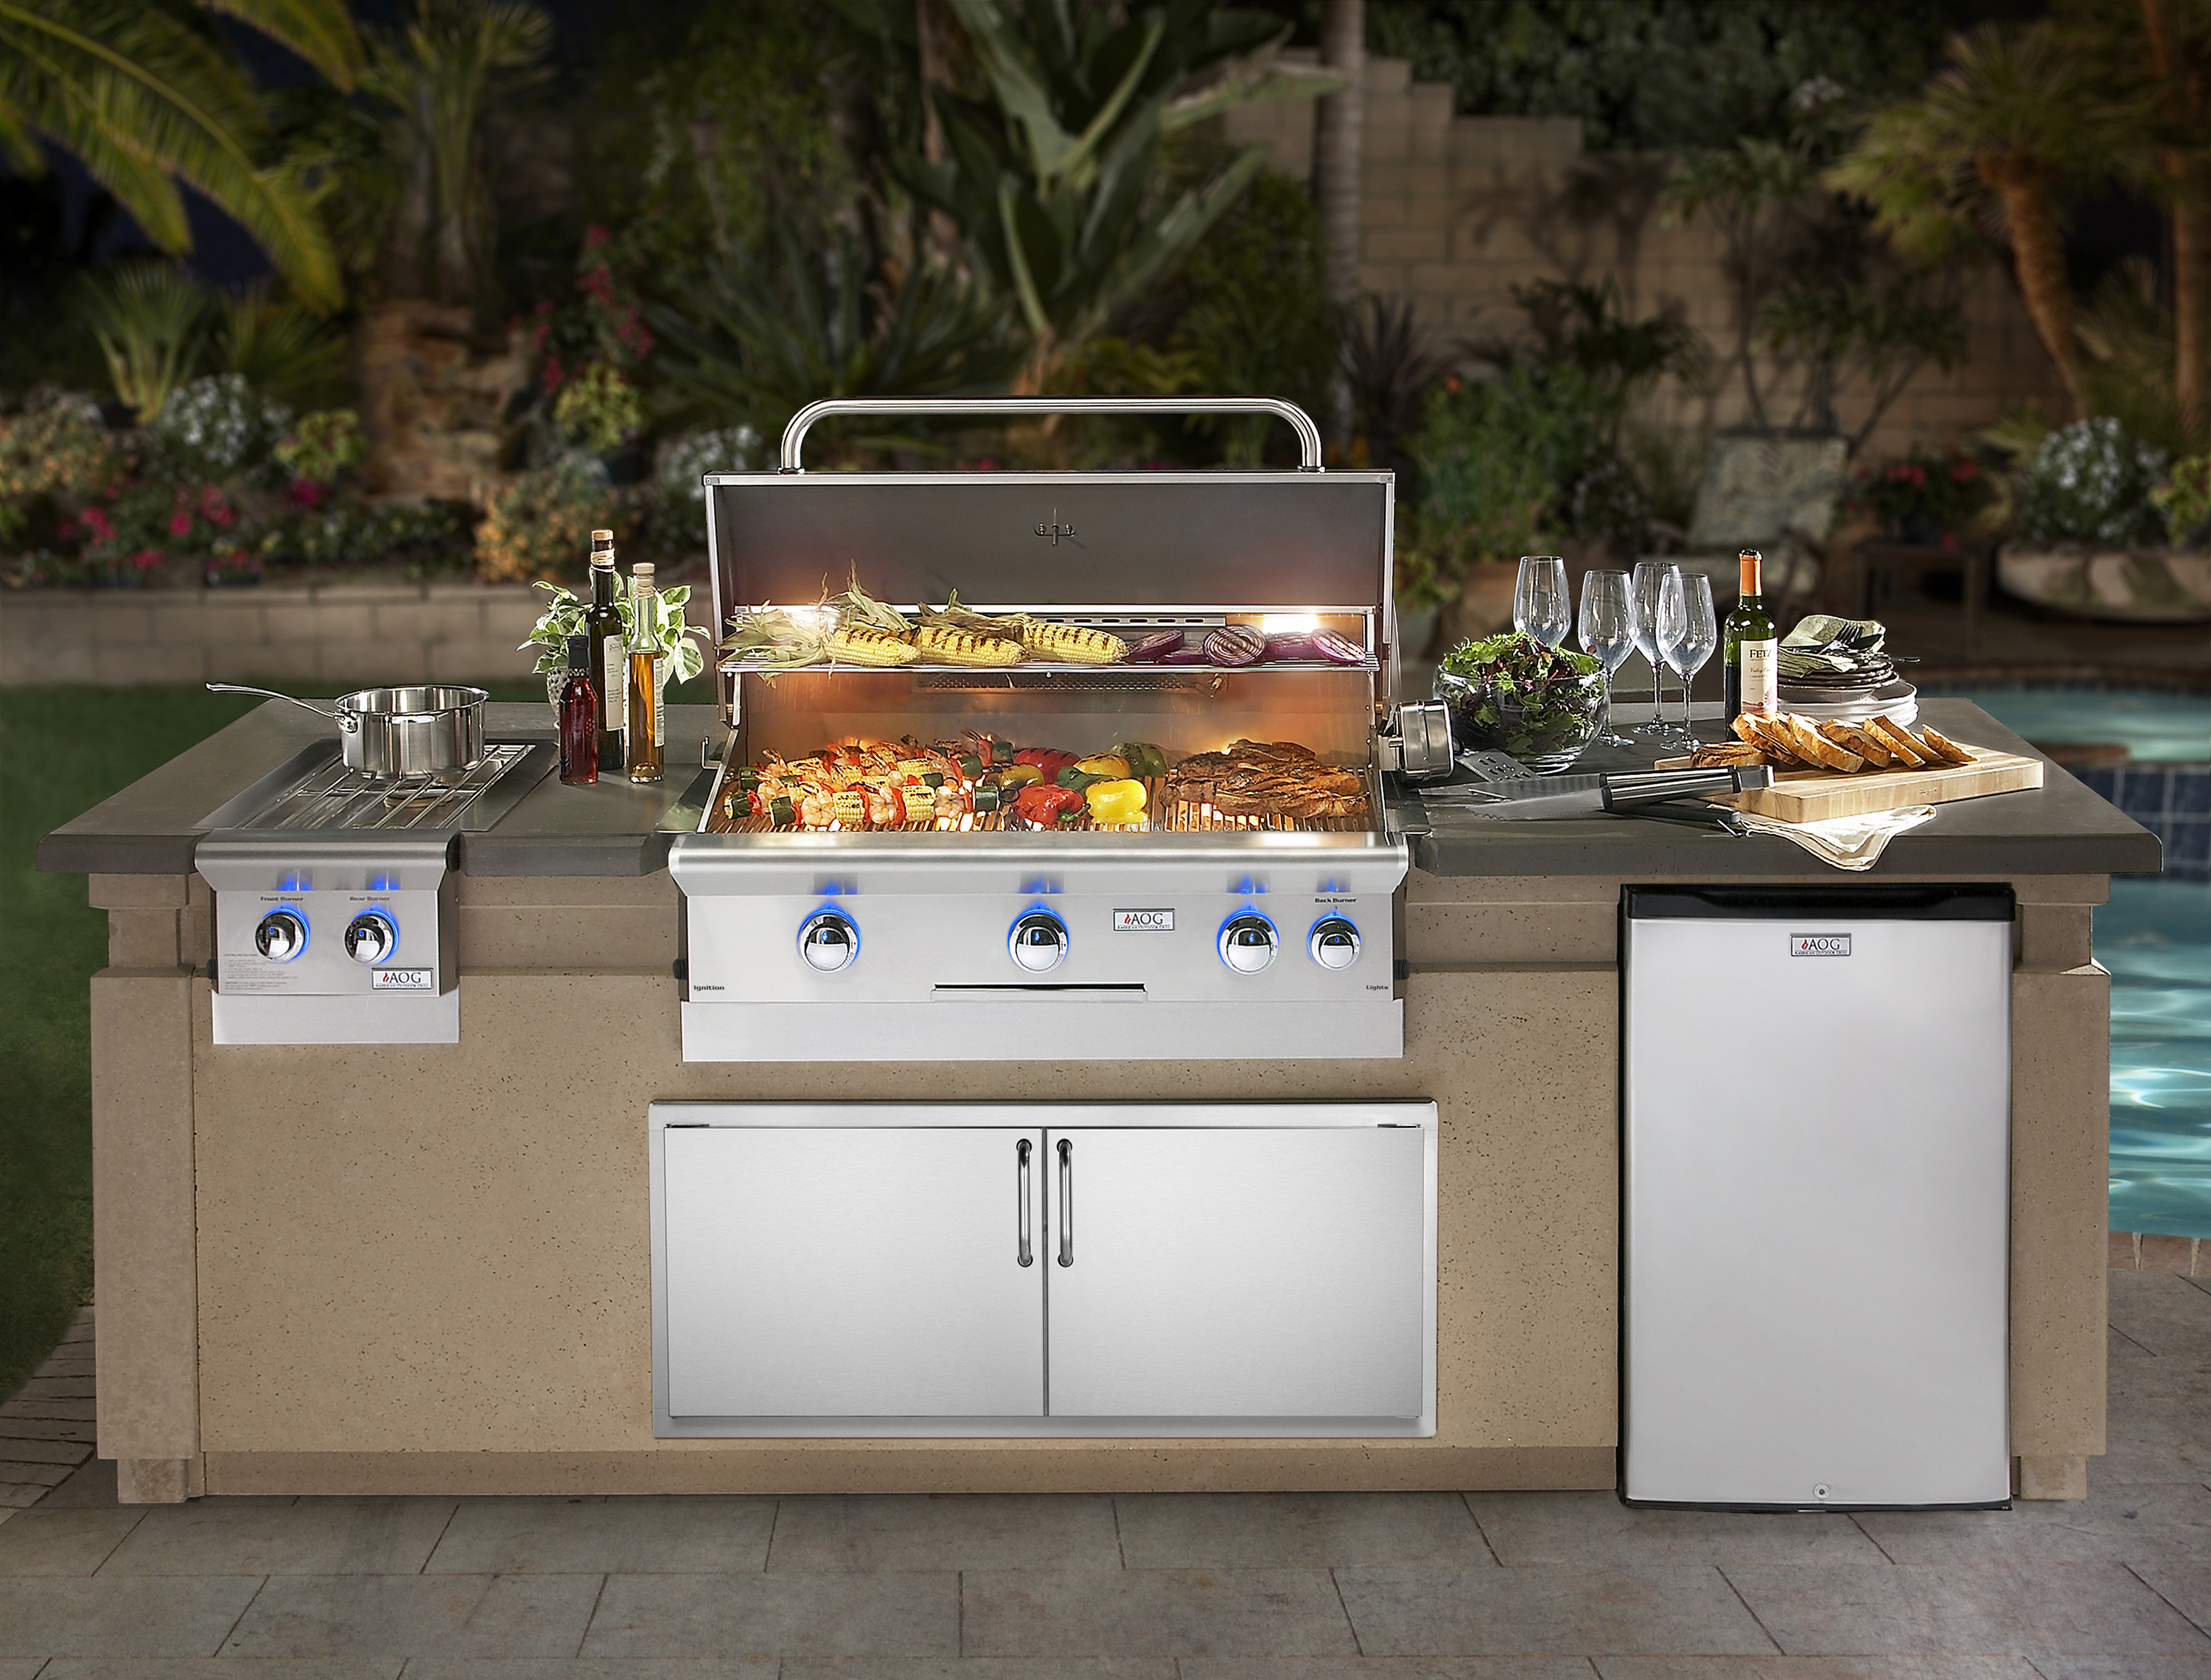 AOG_DC790-CBR-108SM_Island System with L-Series, Lifestyle (2018)